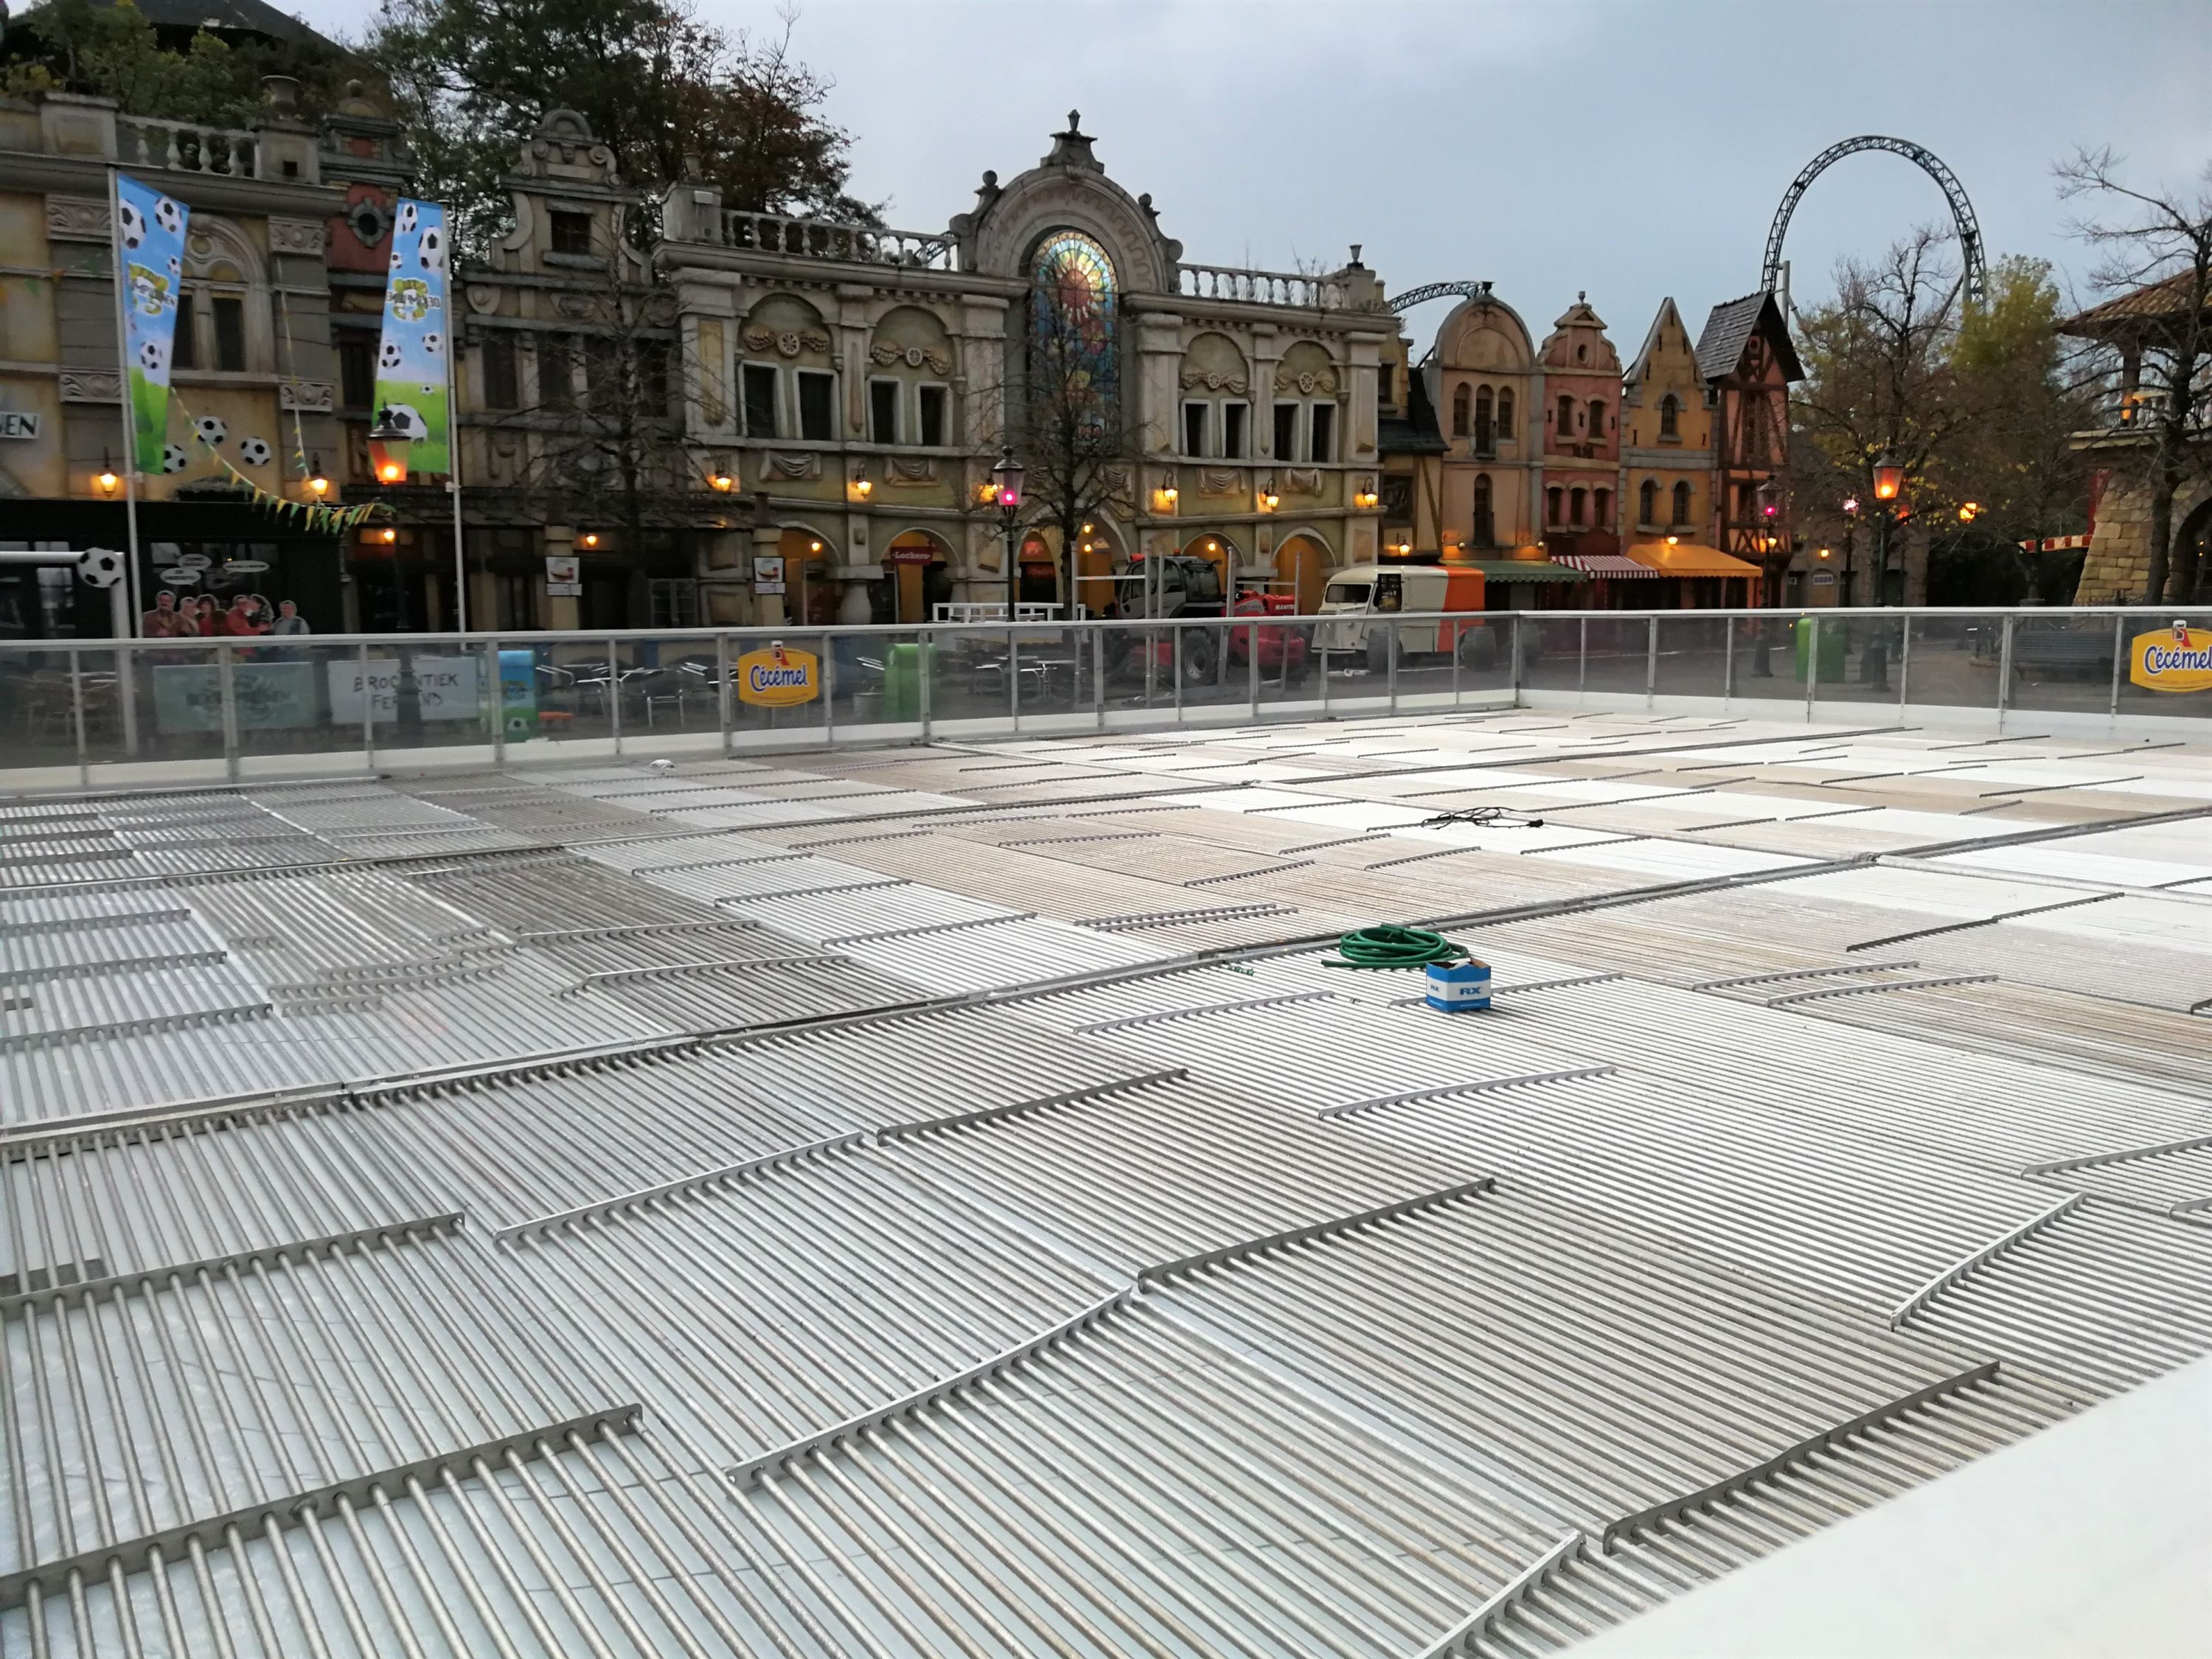 The ice rink builders are back!